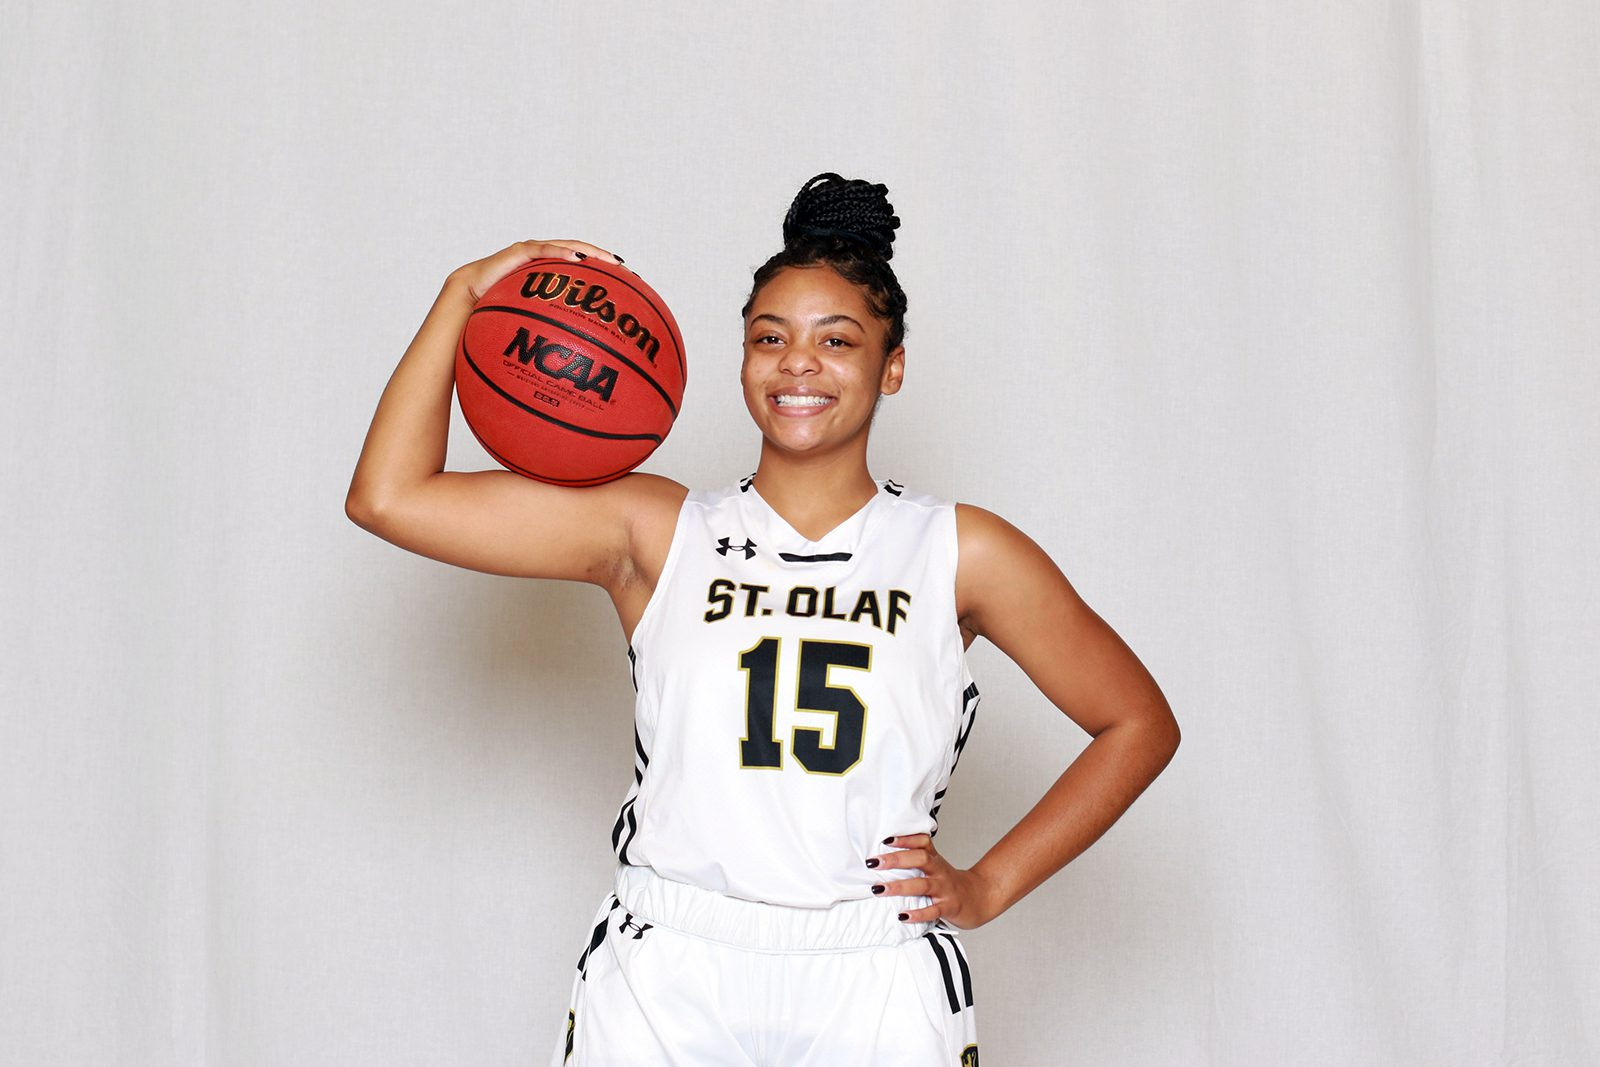 Portrait of K'Lynn Lewis wearing a white basketball jersey and holding a basketball against a white background.